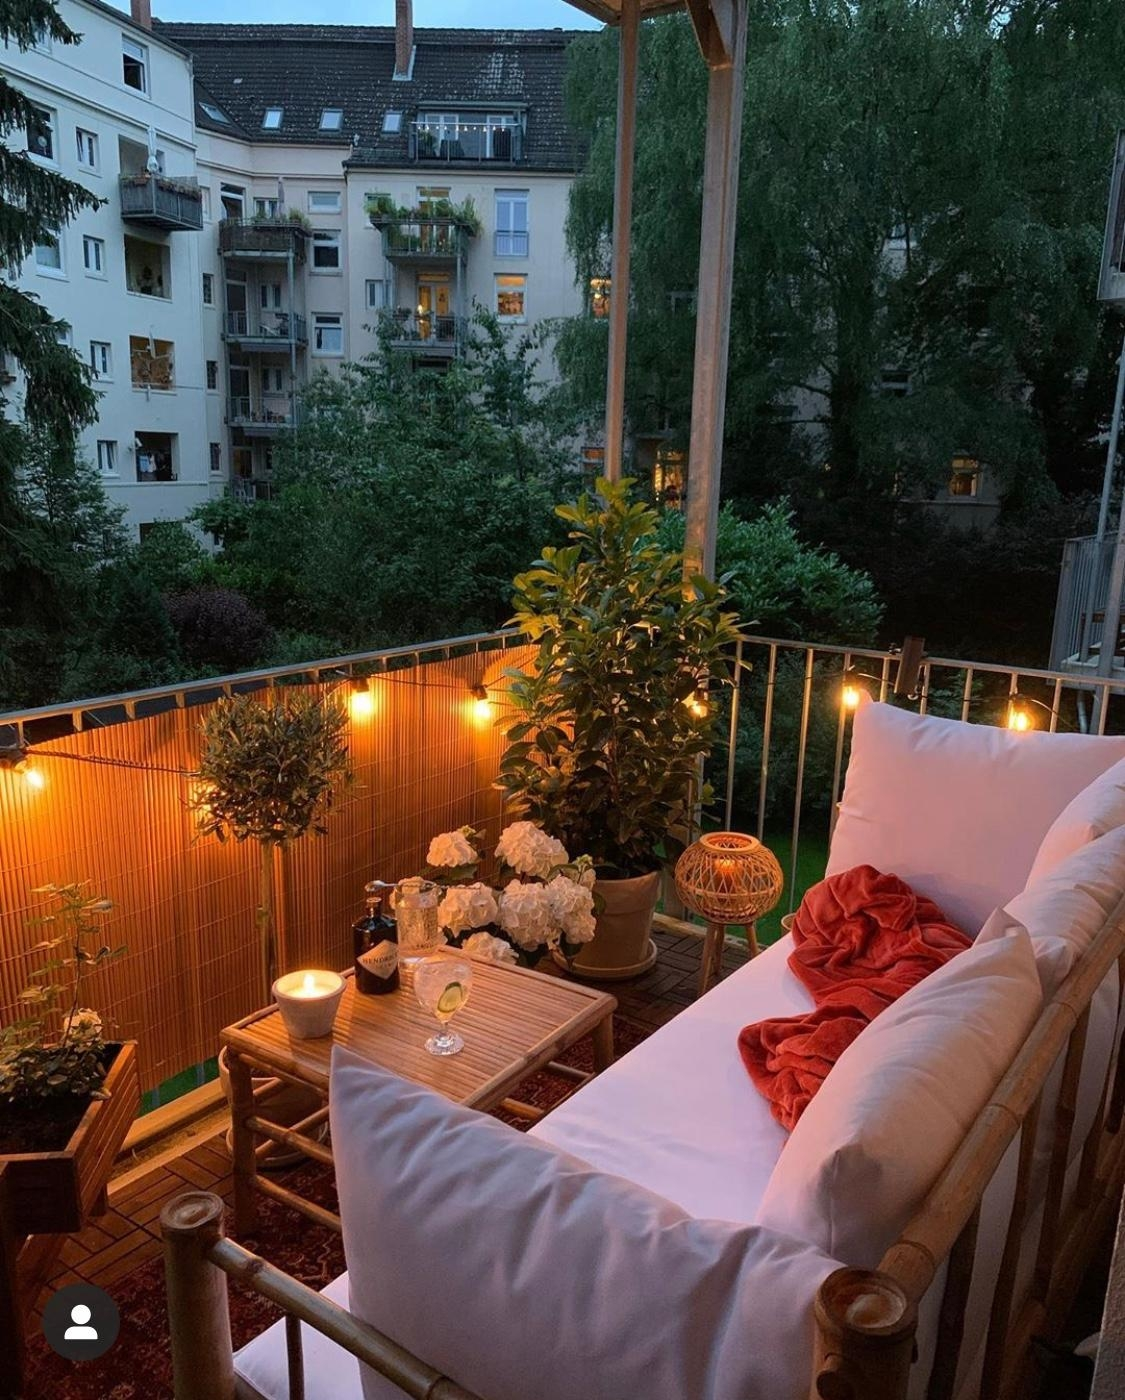 Summer nights on the balcony balkon  429a3224 bf79 48d8 9bbf c554041ed1bd